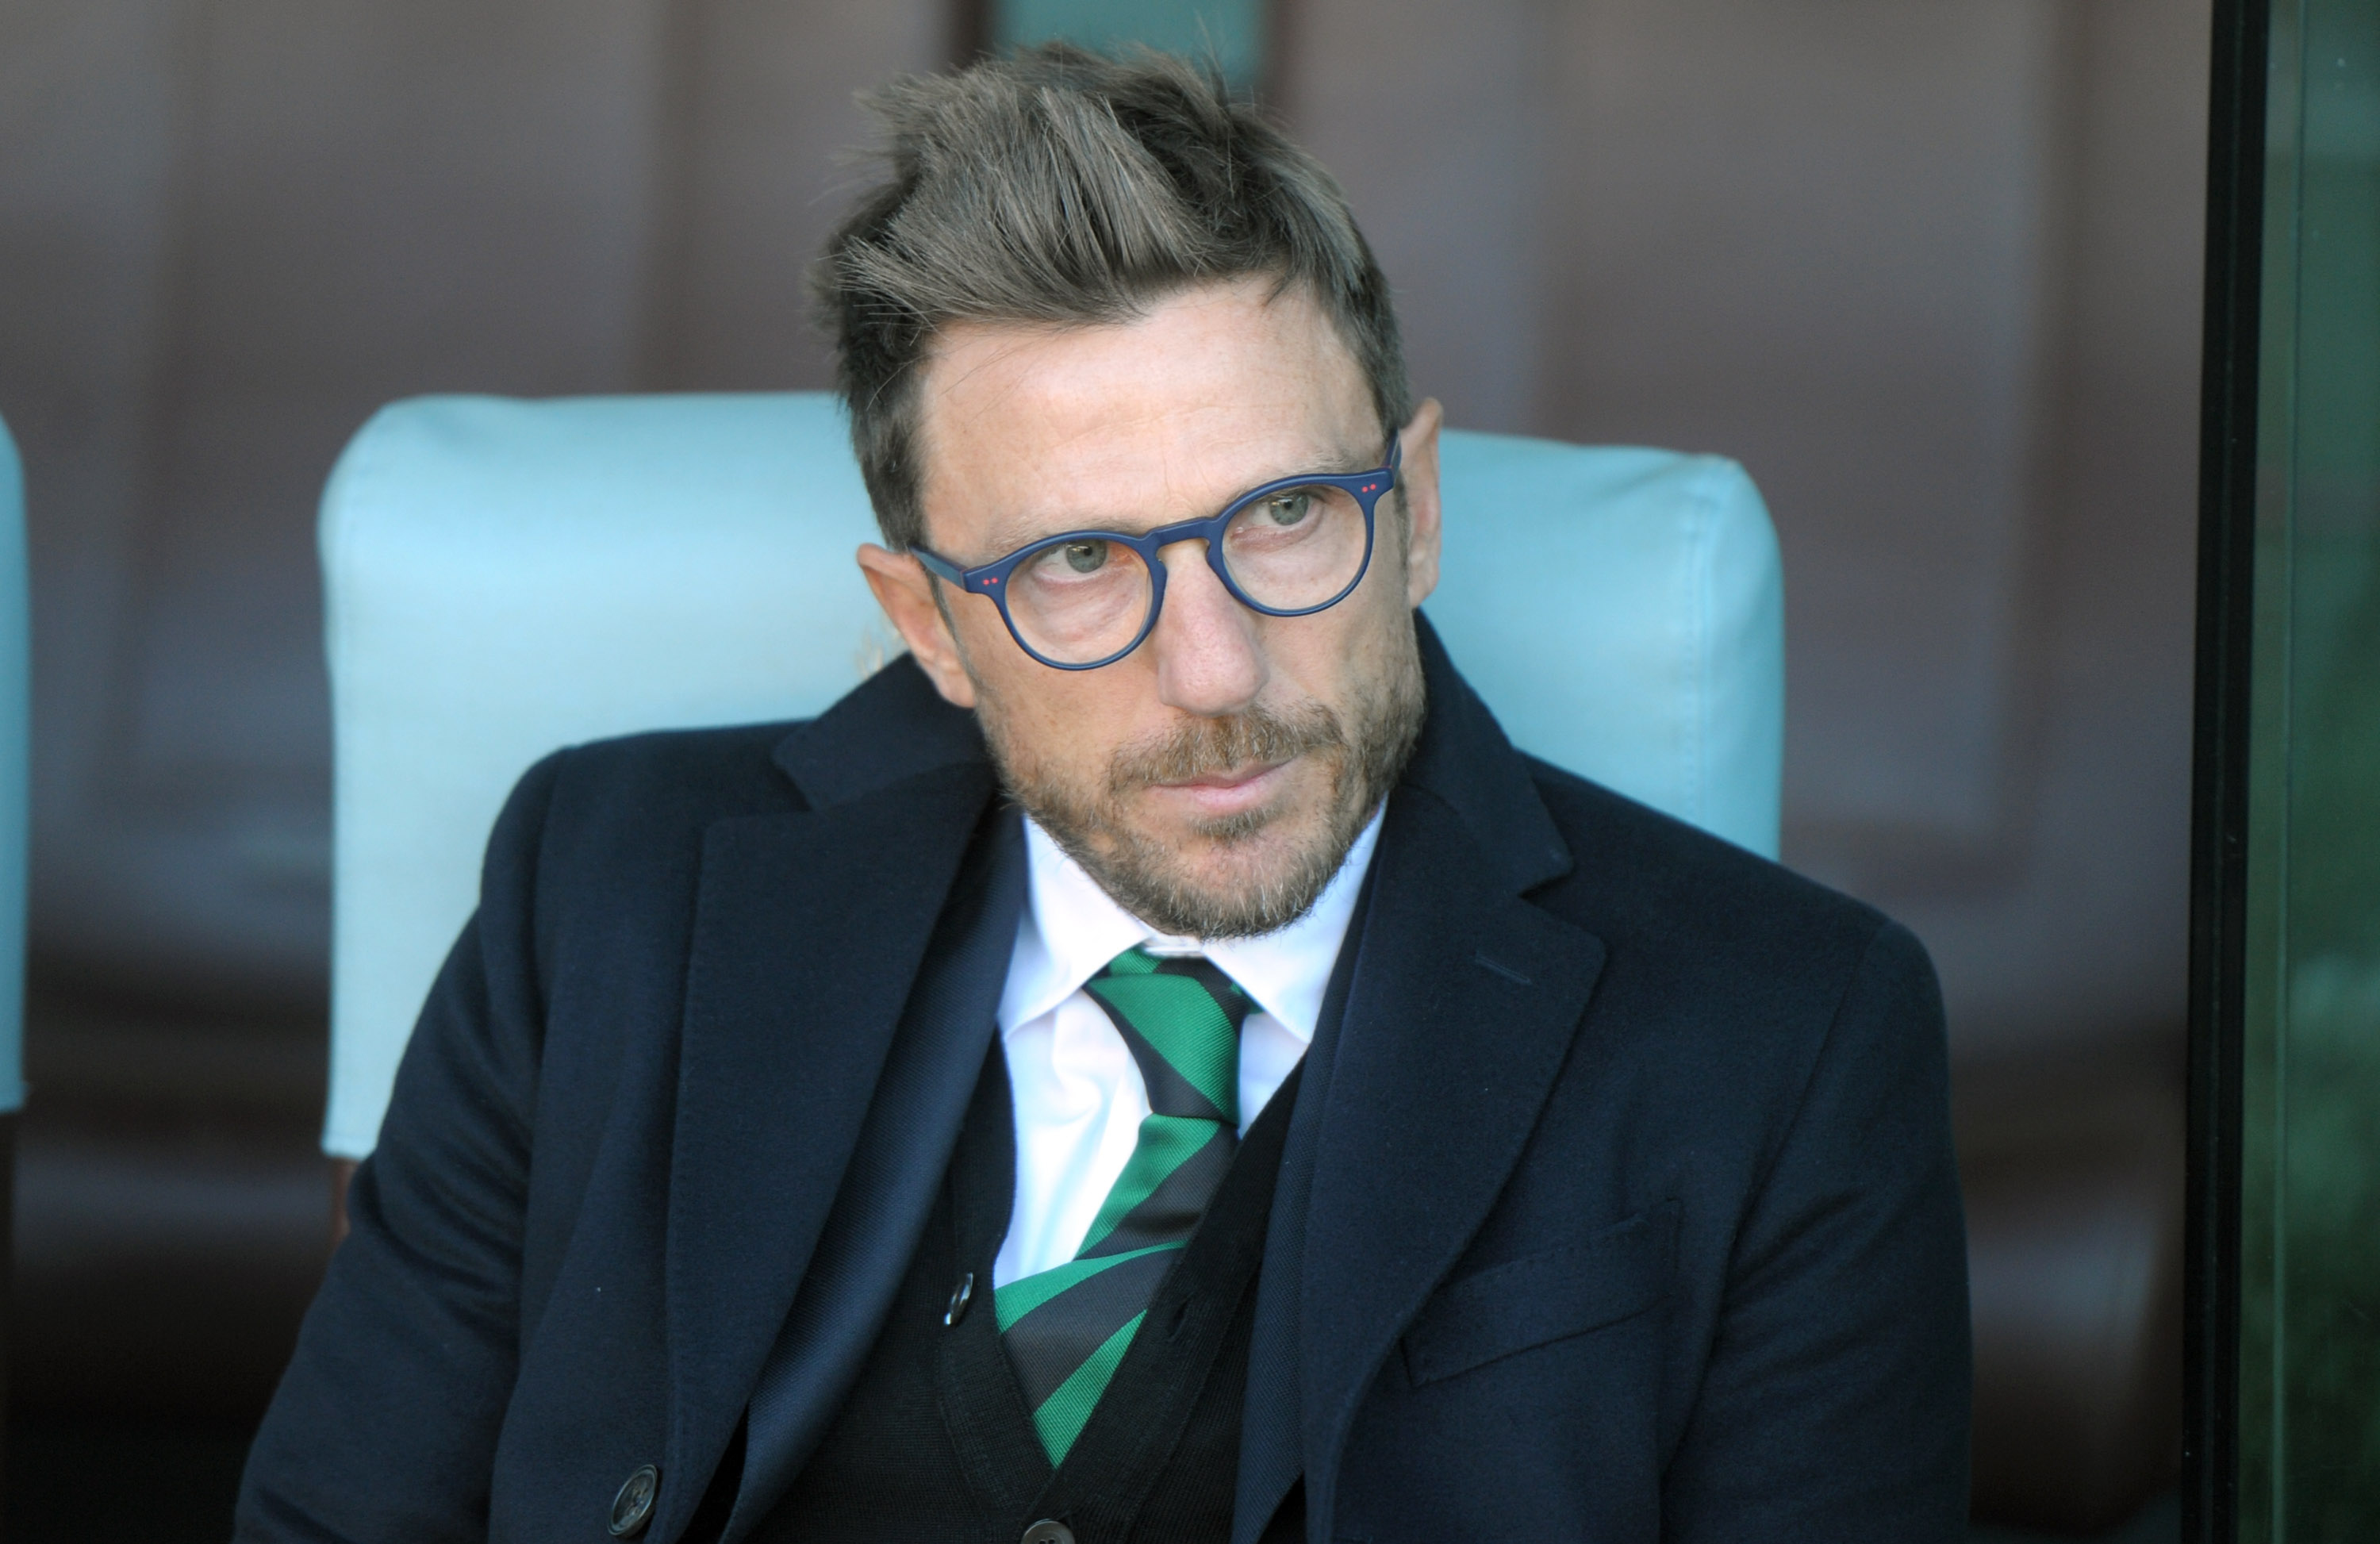 UDINE, ITALY - NOVEMBER 01: Head coach of US Sassuolo Eusebio Di Francesco looks on during the Serie A match between Udinese Calcio and US Sassuolo Calcio at Stadio Friuli on November 1, 2015 in Udine, Italy. (Photo by Dino Panato/Getty Images)